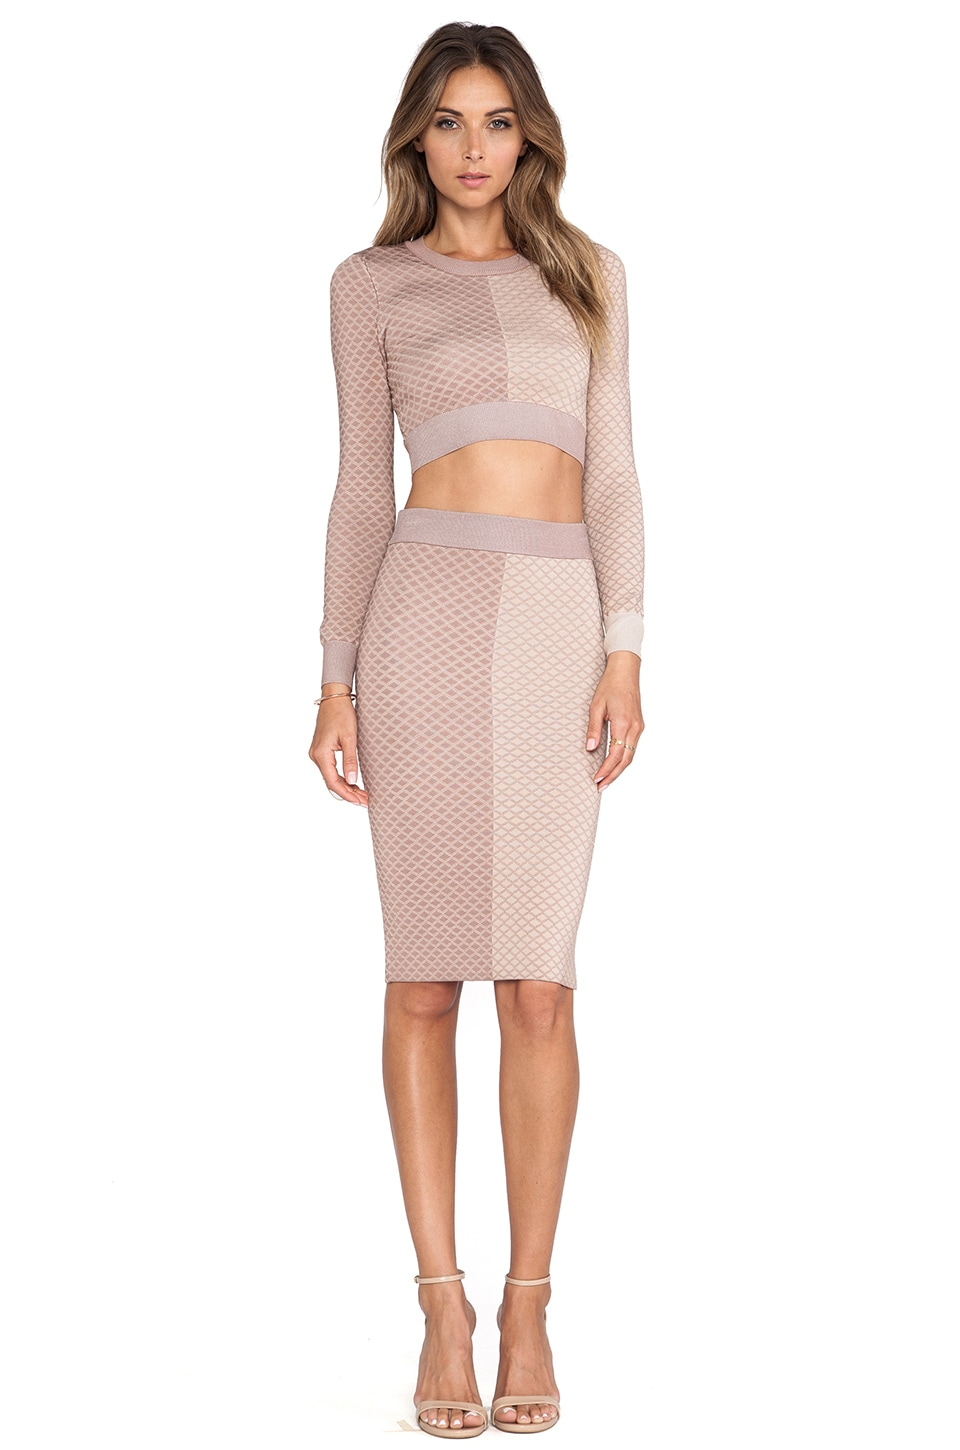 MLV Shae Argyle Pencil Skirt in Nude | REVOLVE